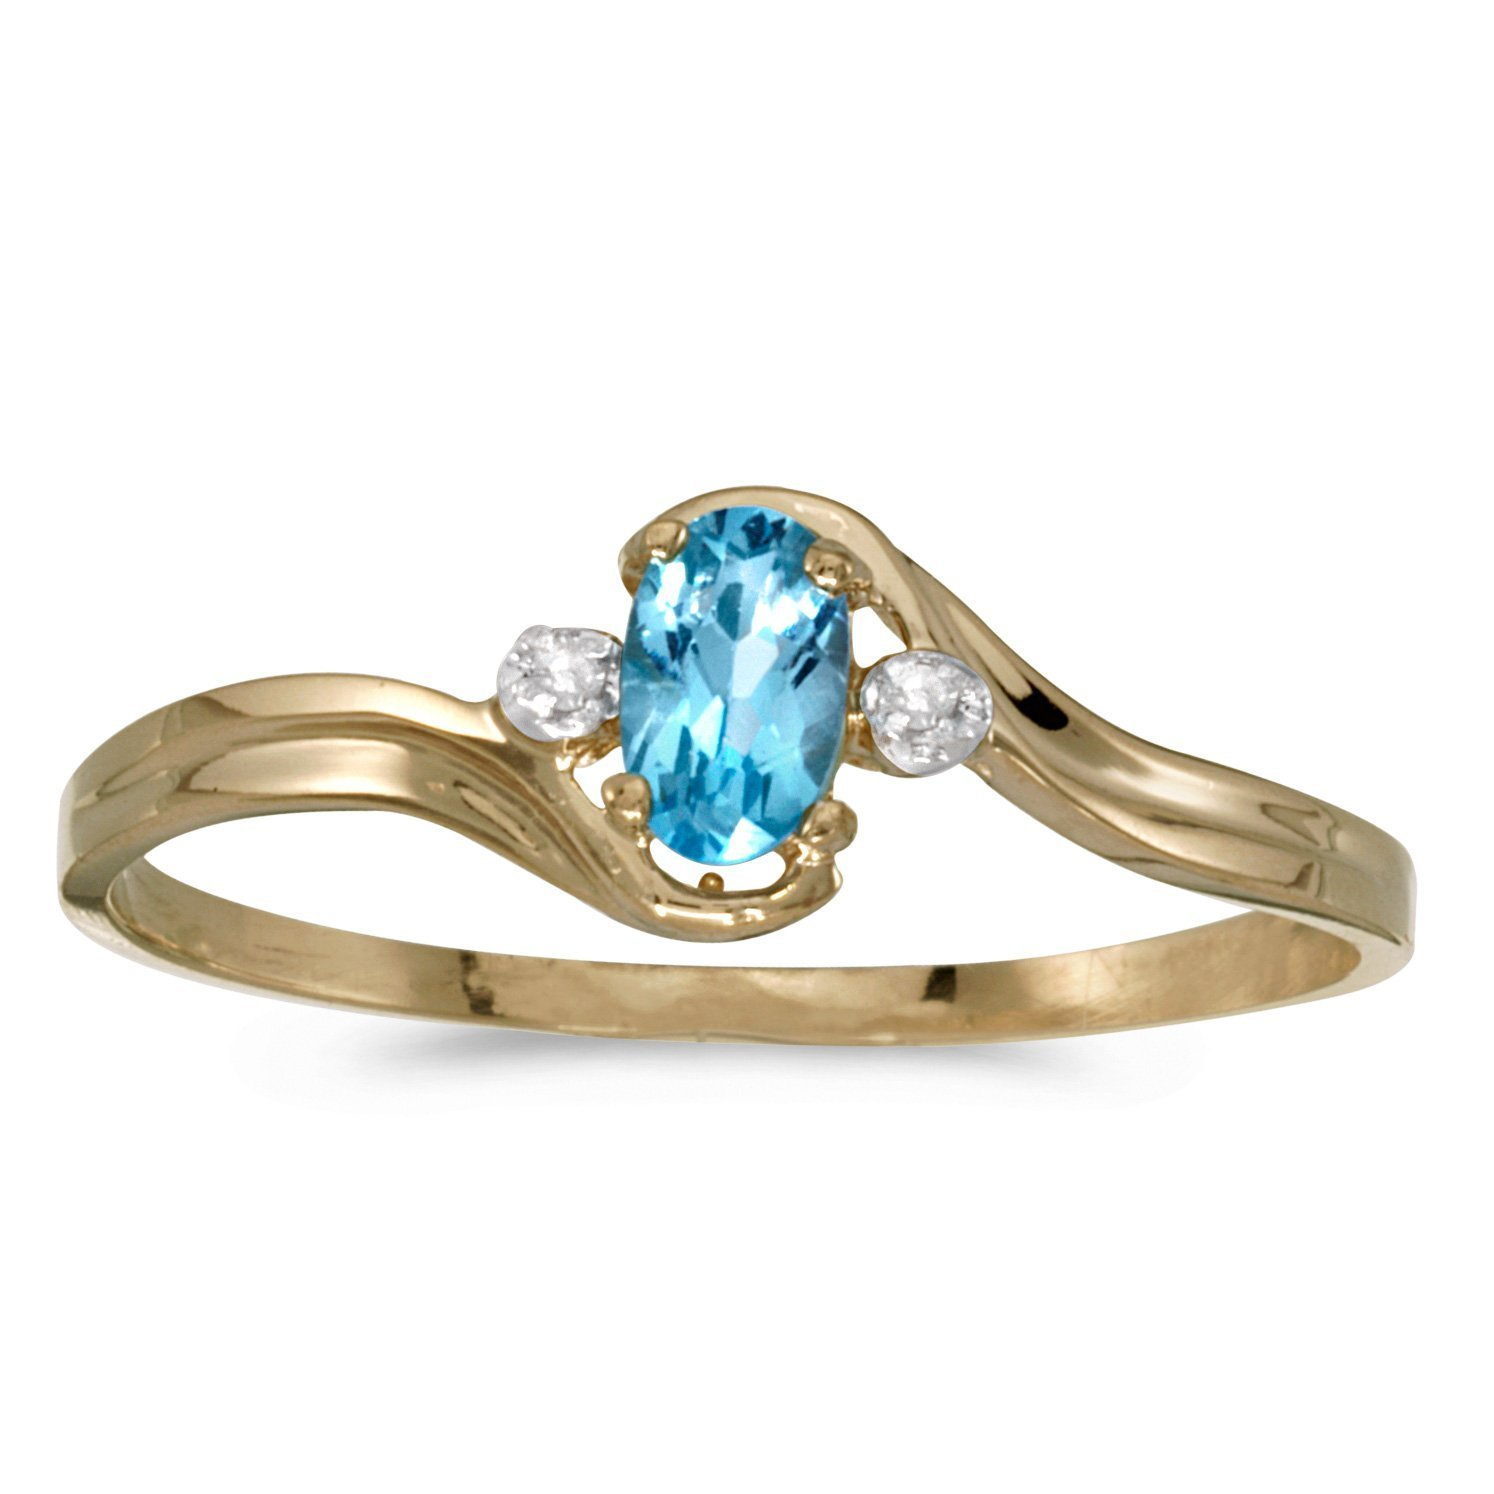 FB Jewels 14k Yellow Gold Genuine Blue Birthstone Solitaire Oval Blue Topaz And Diamond Wedding Engagement Statement Ring - Size 8 (1/5 Cttw.)